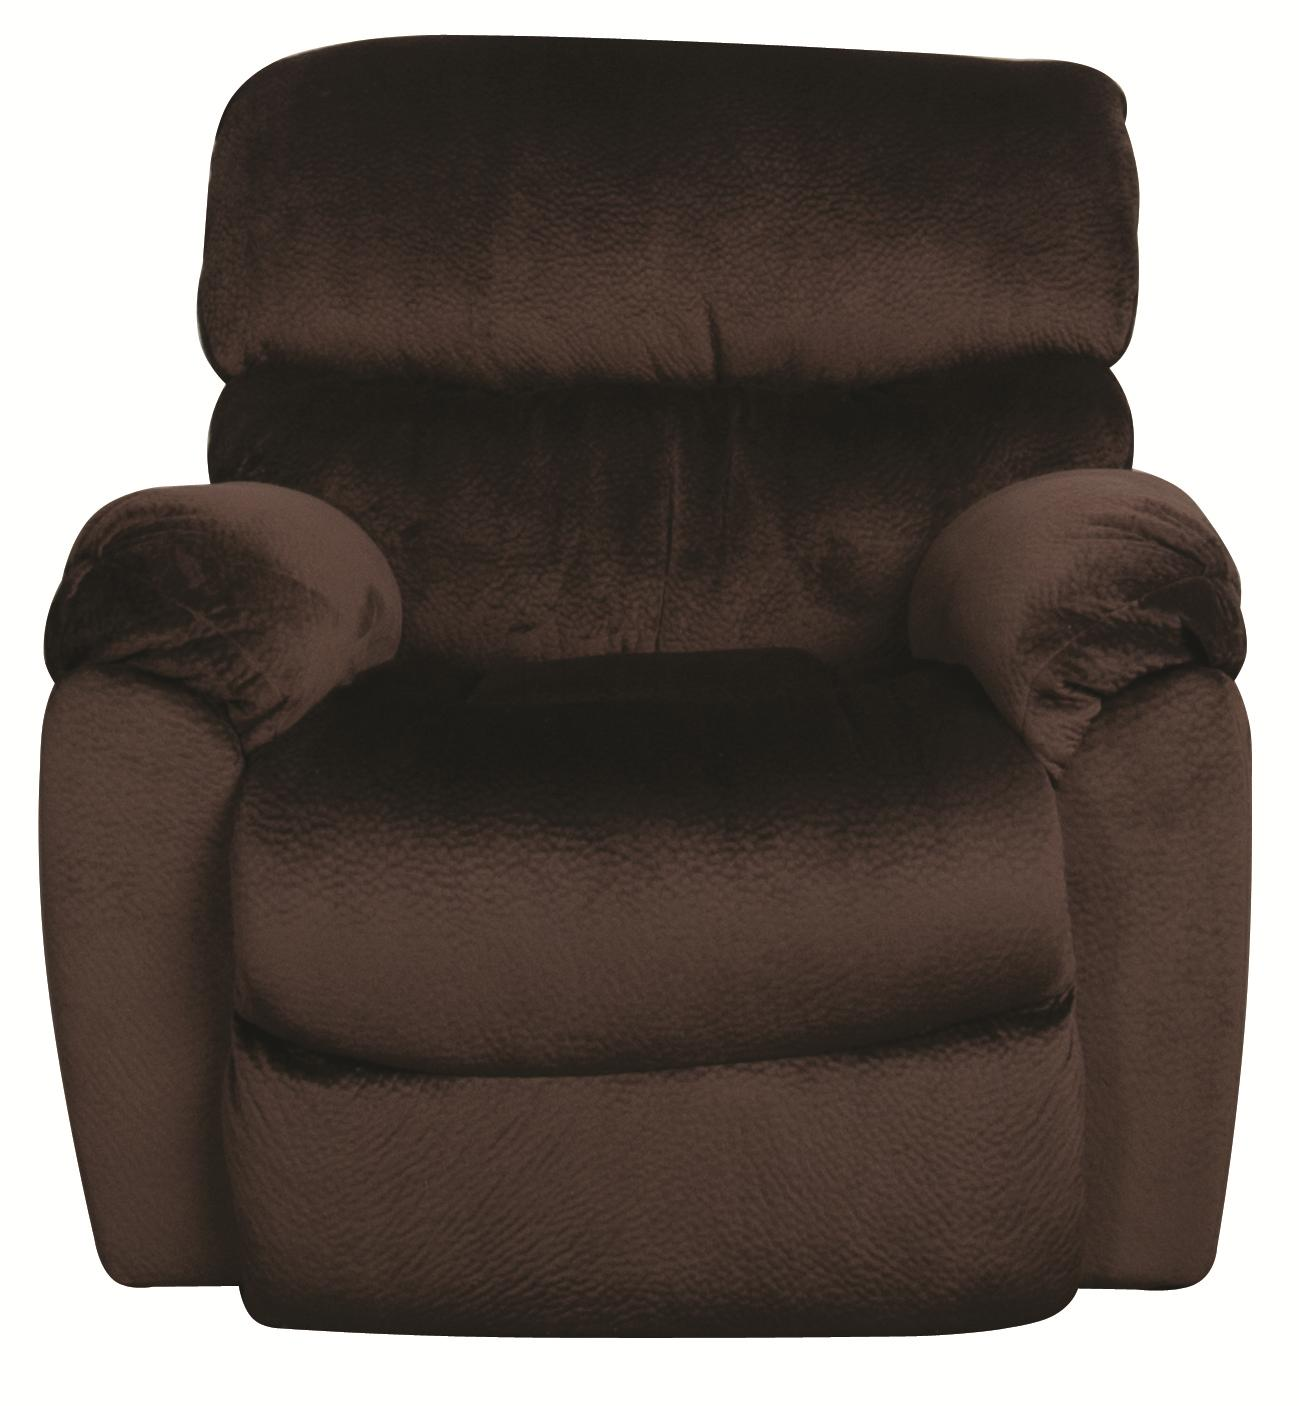 Morris Home Furnishings Dakota Dakota Power Recliner - Item Number: 108835488